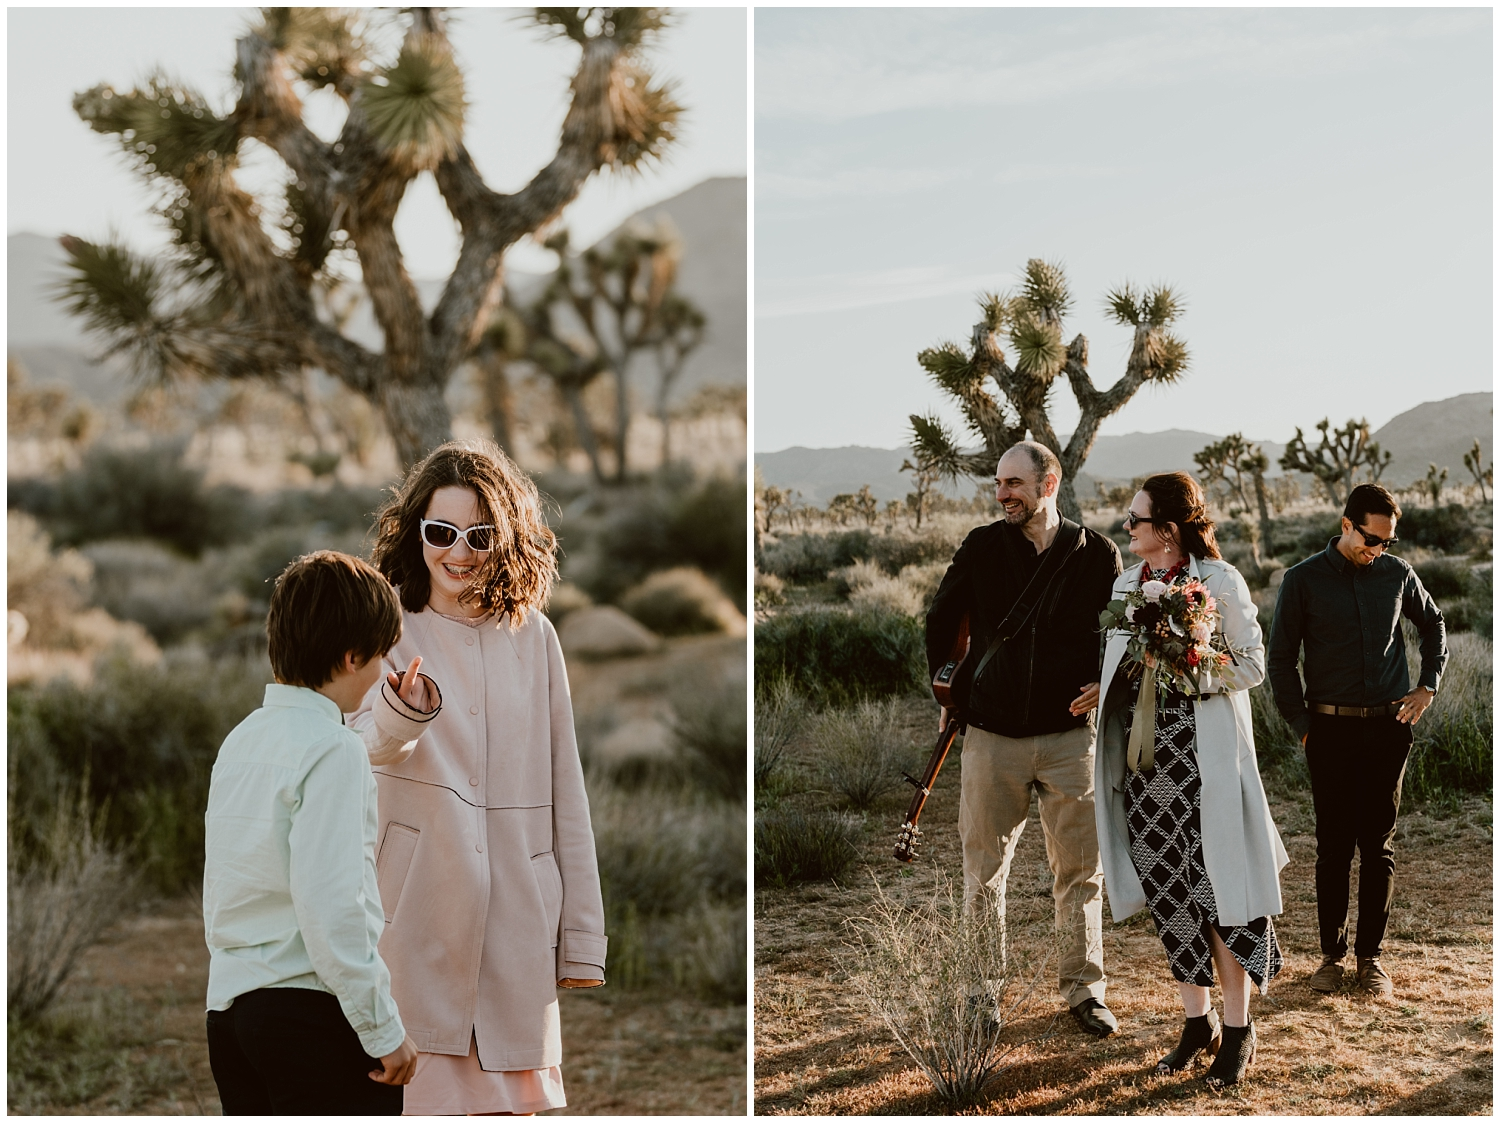 Cap-Rock-Joshua-Tree-Elopement-0059.jpg